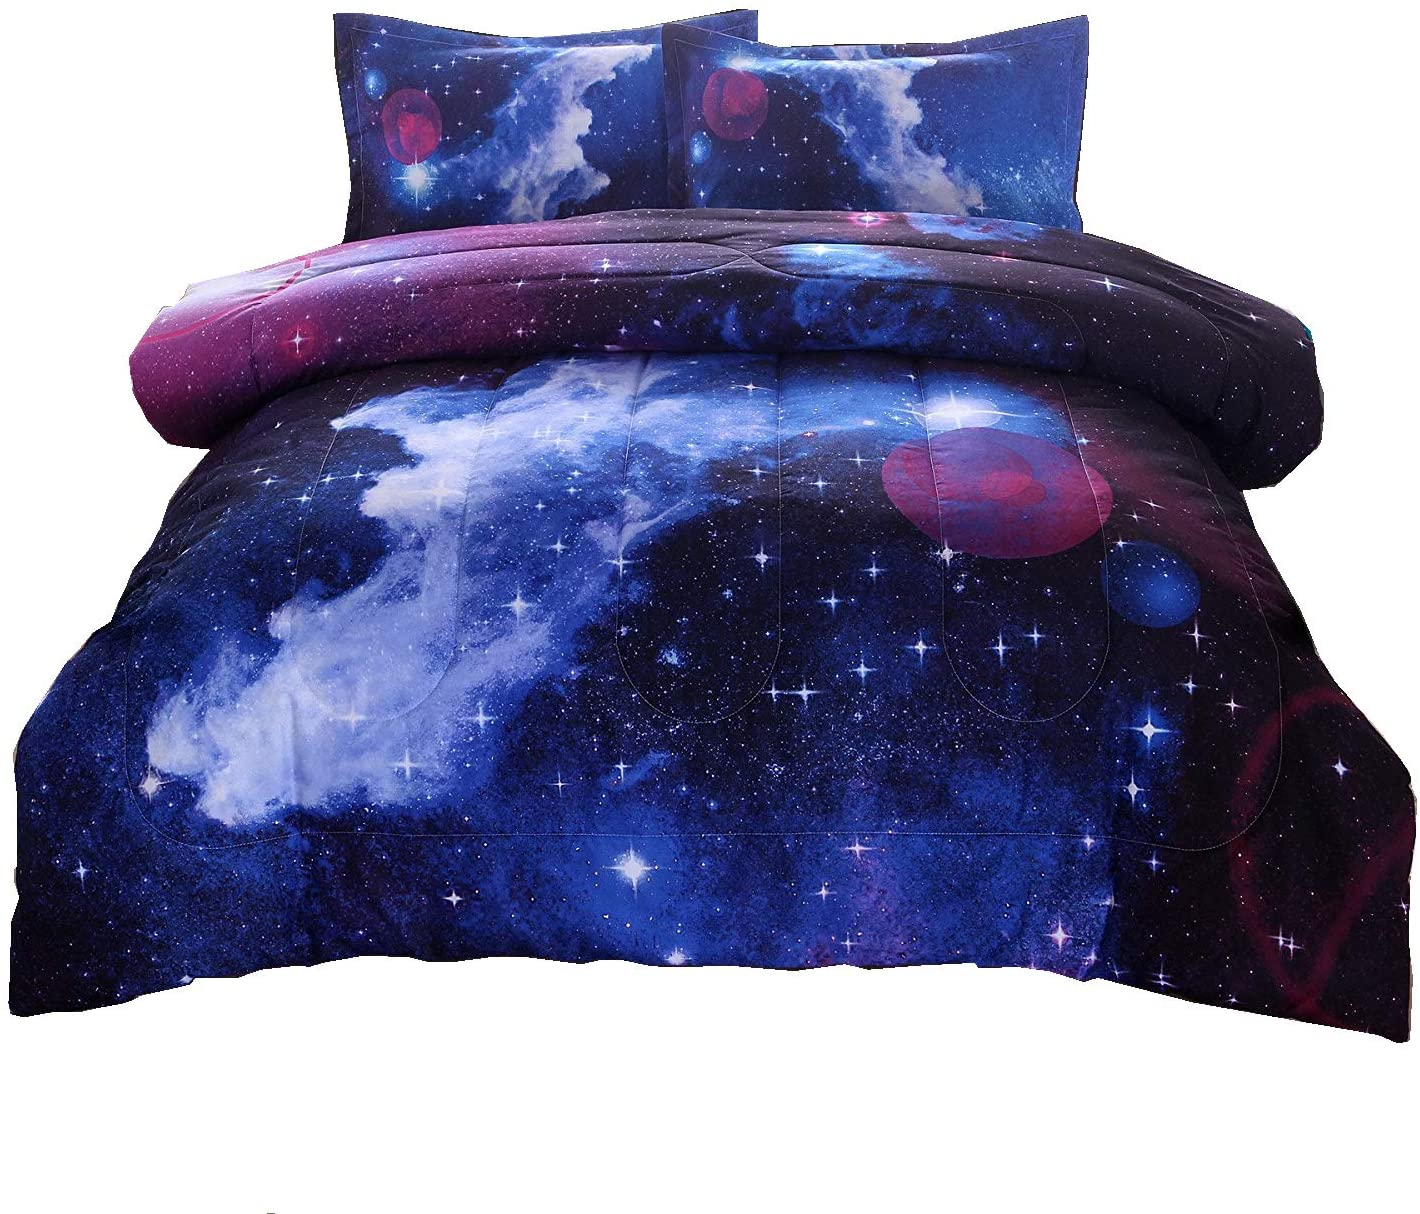 A Nice Night Galaxy Bedding Set for Children